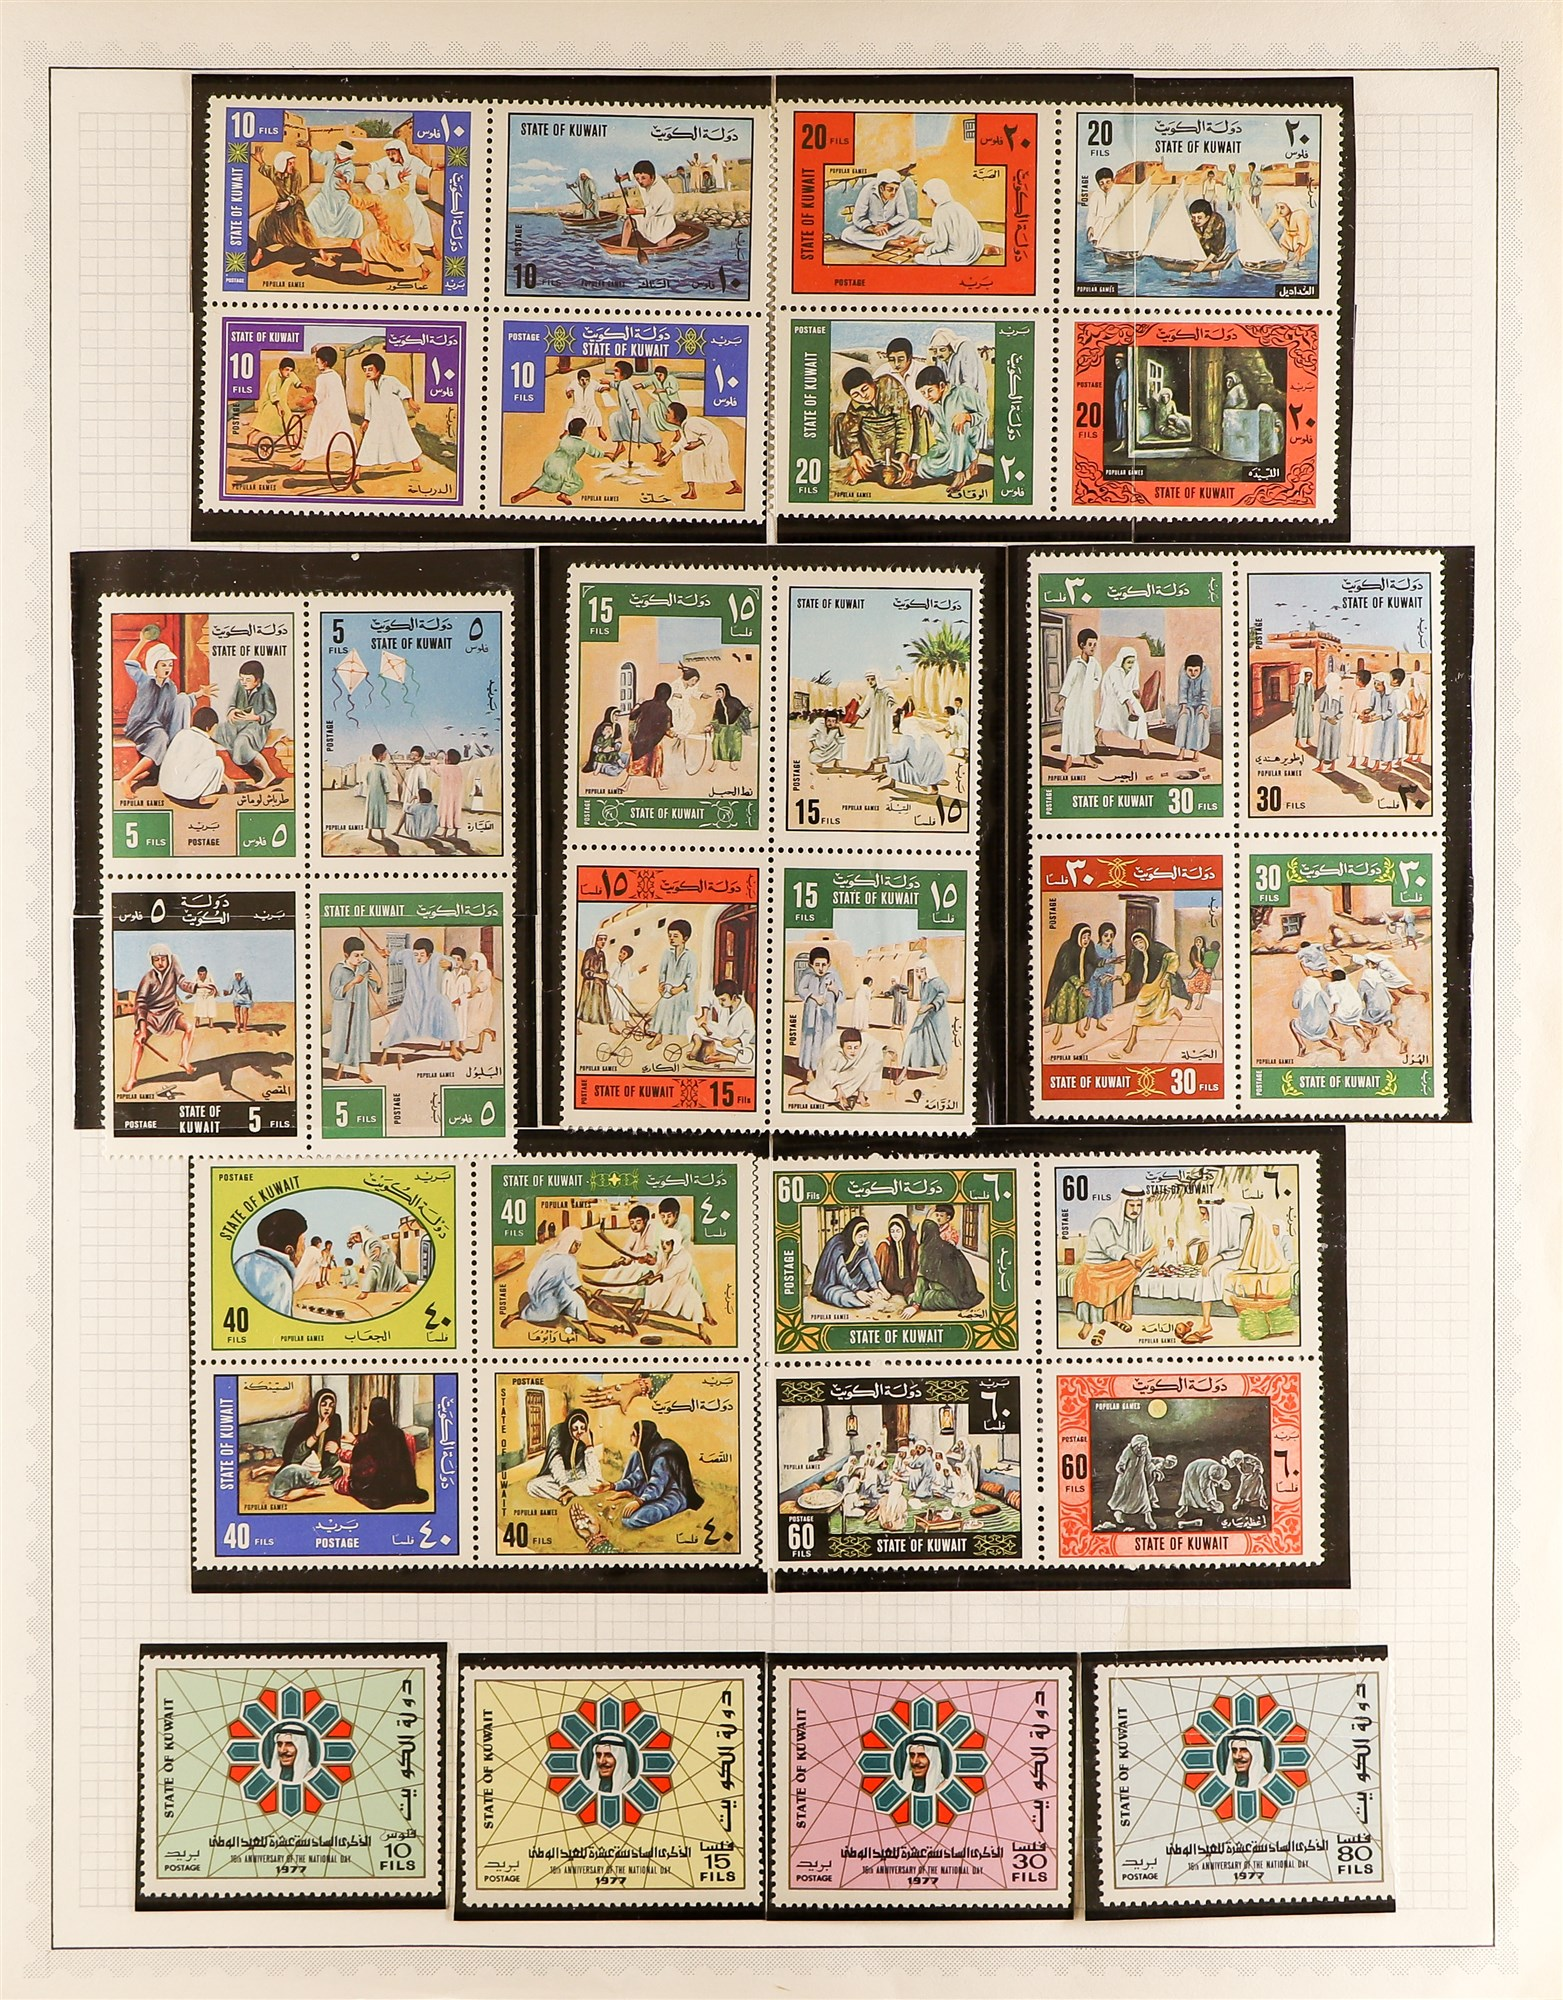 KUWAIT 1977-1983 NEVER HINGED MINT COLLECTION incl. 1977 Sheikh set, 1977 Games se-tenant blocks - Image 3 of 8